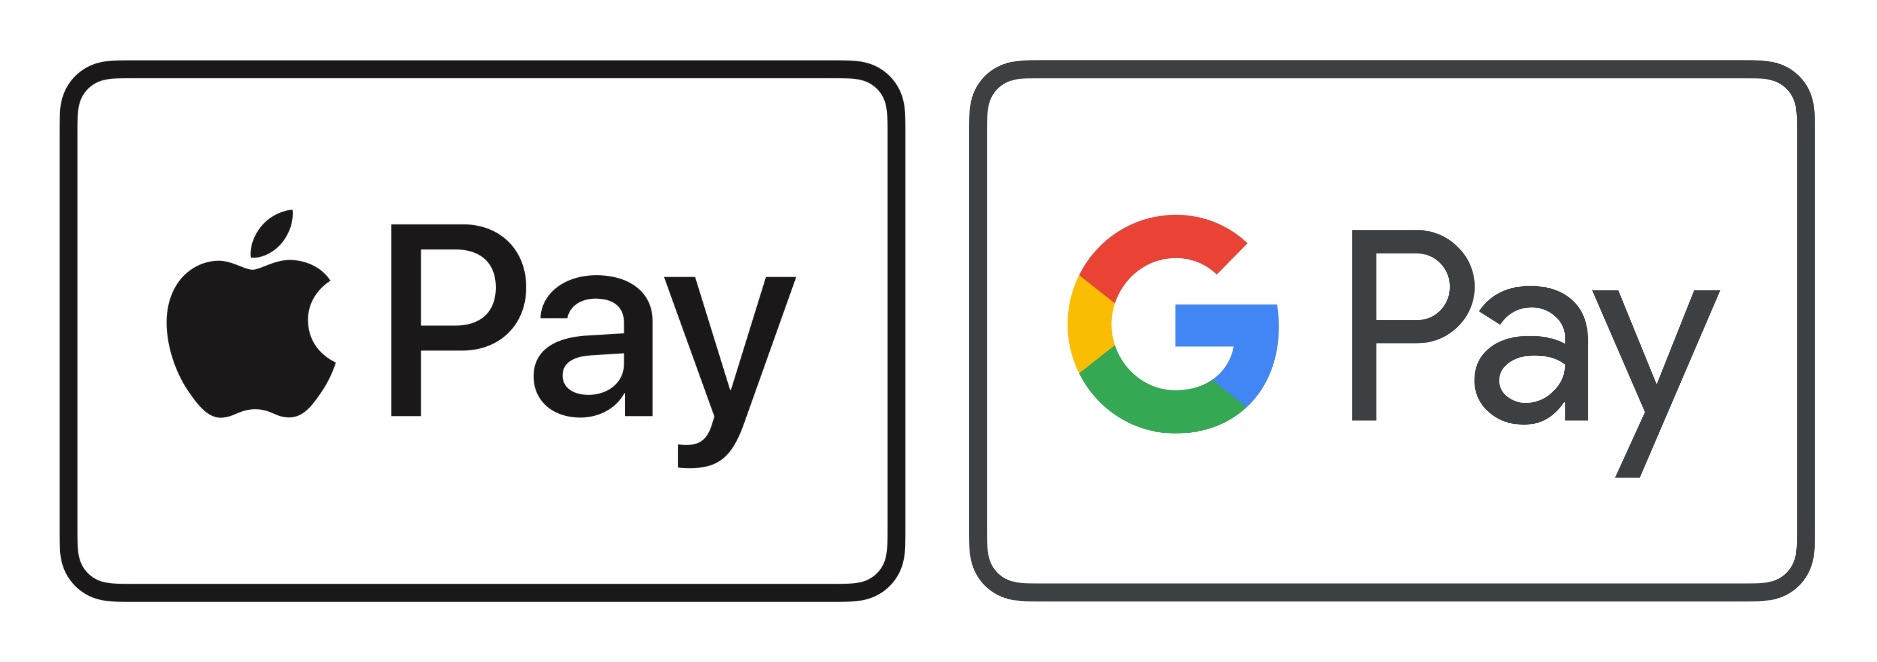 Apple Pay / Google Pay Handyzahlung